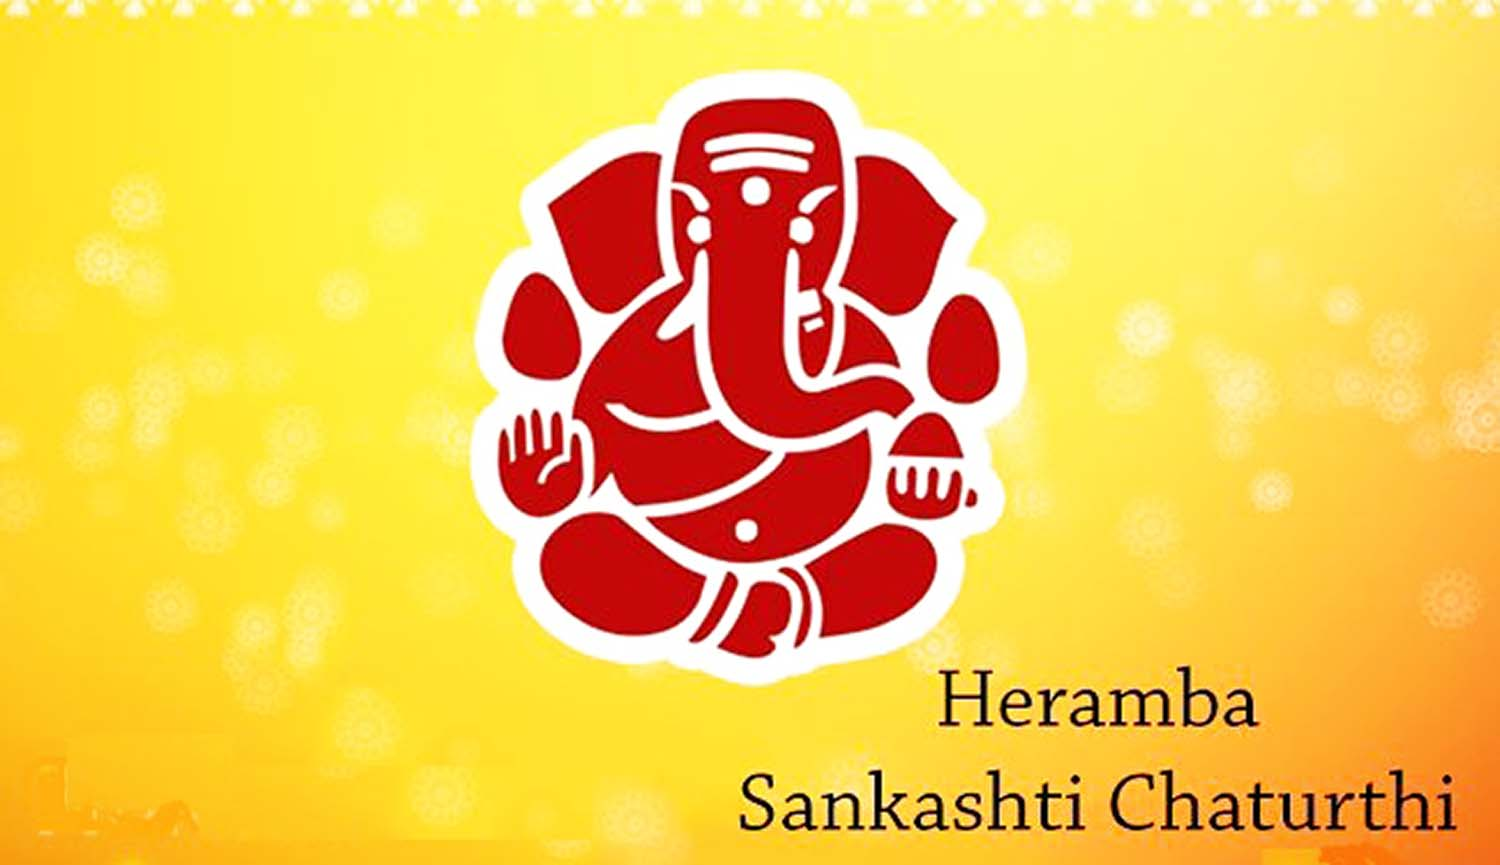 sankashti chaturthi wallpapers